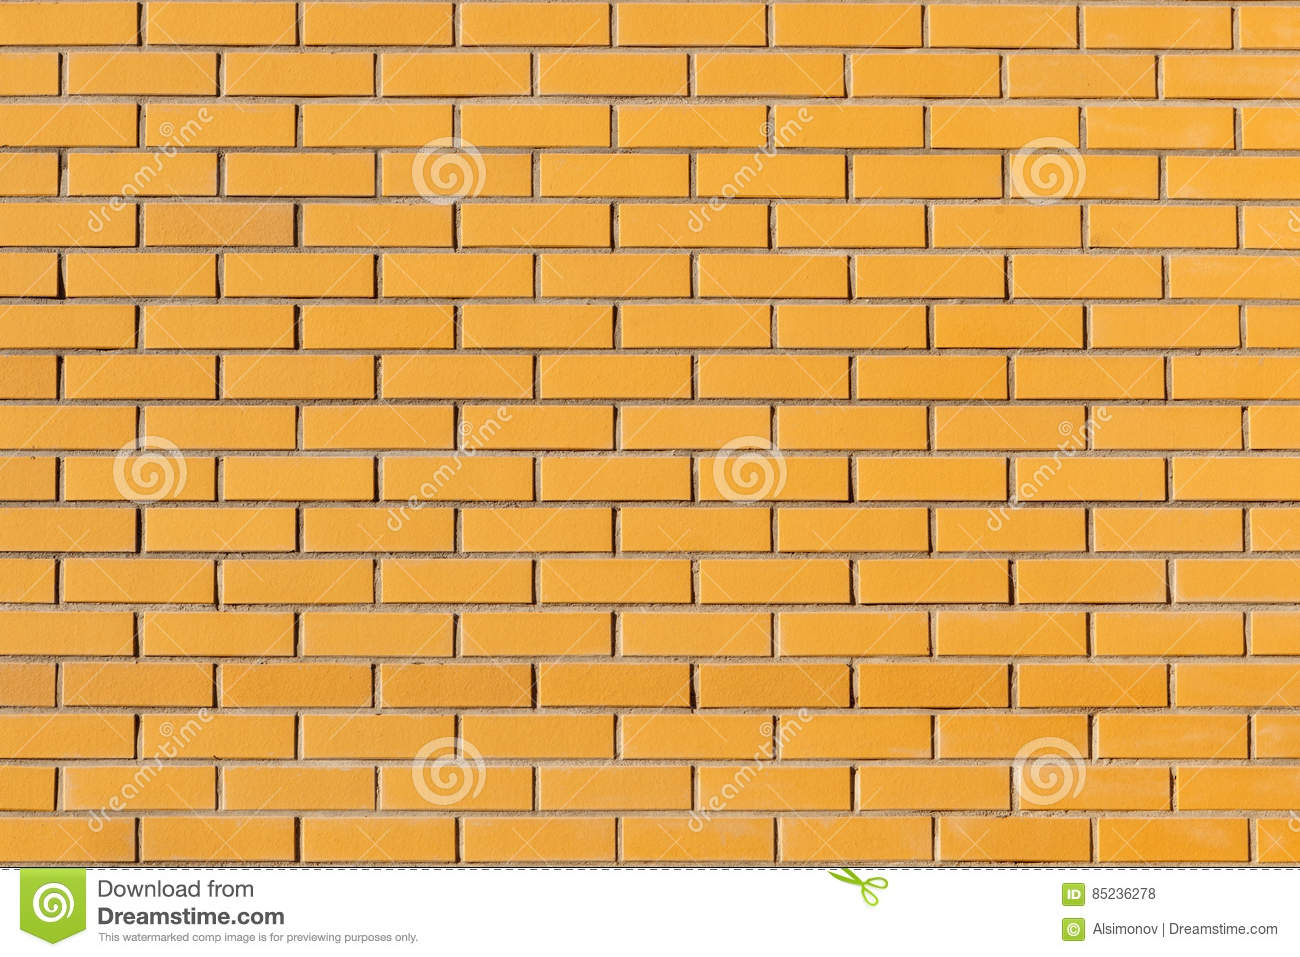 Wall Is Made From A Bright Yellow Ceramic Brick. Stock Photo - Image ...